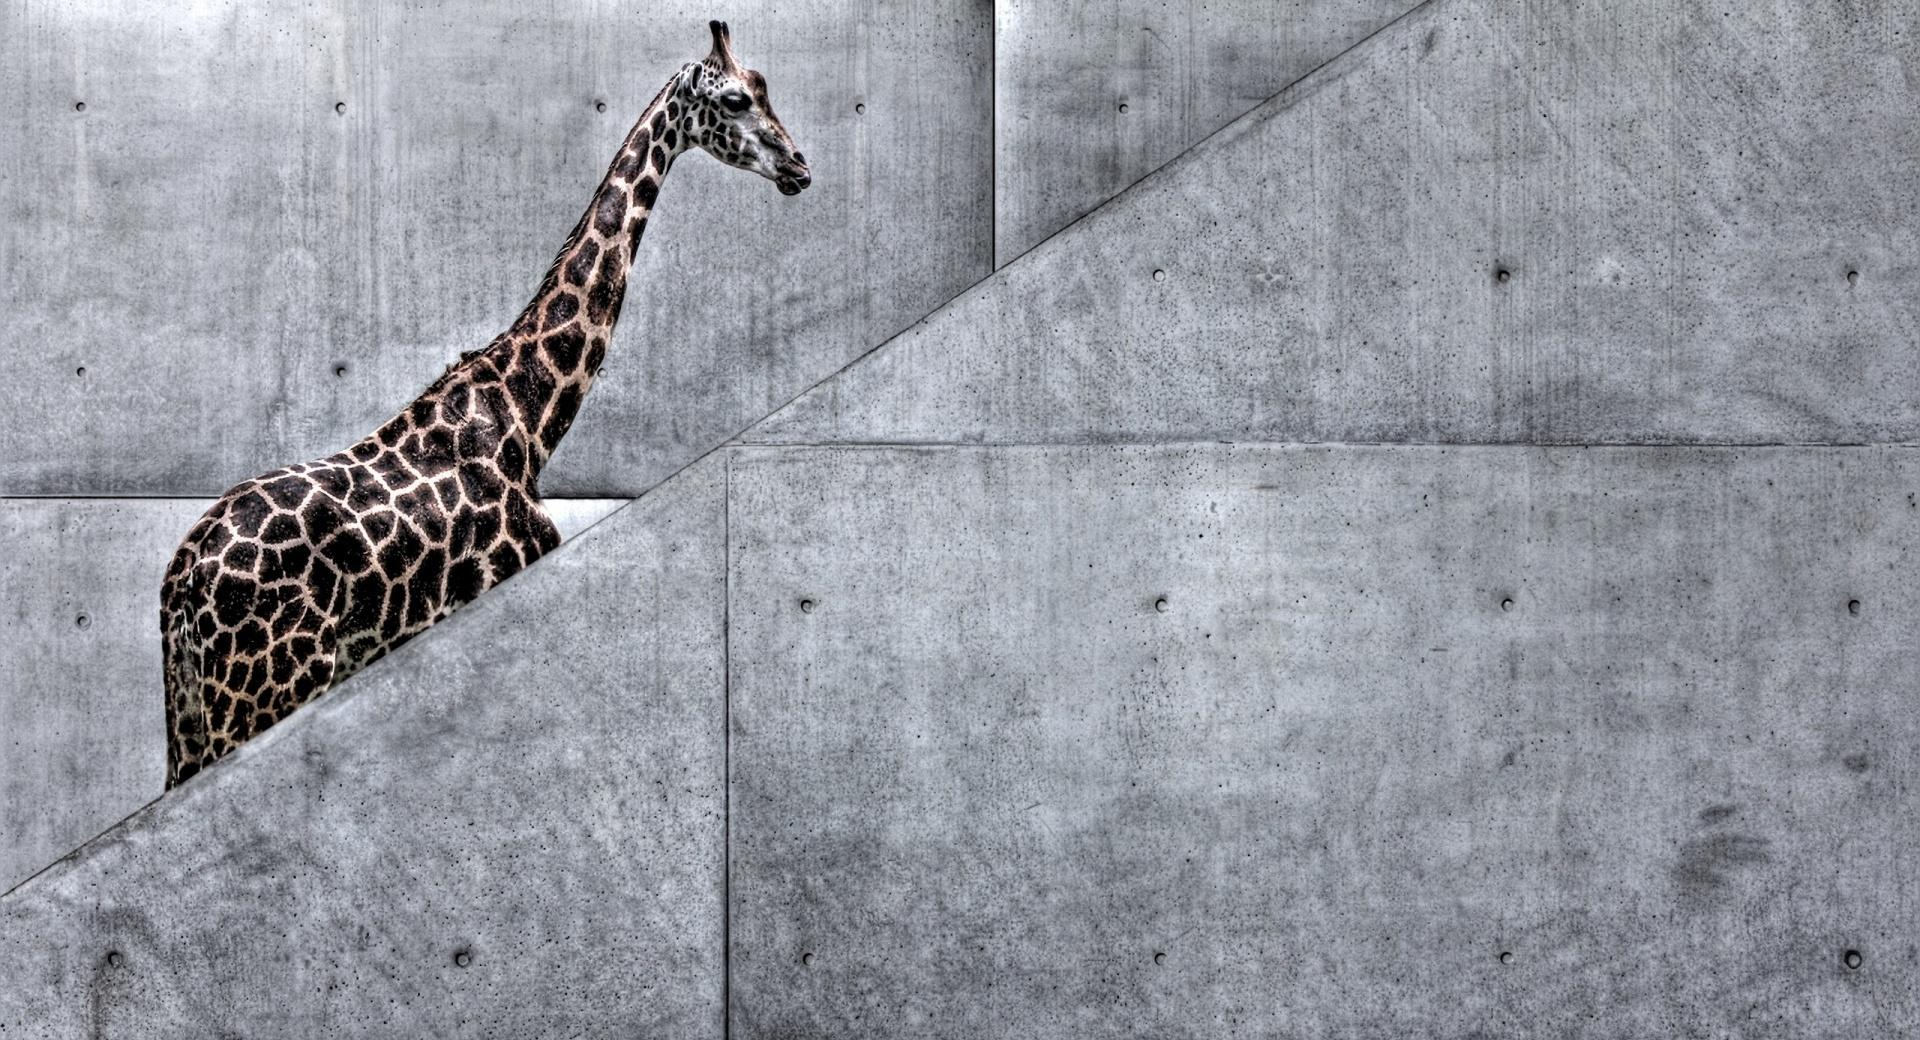 Giraffe Climbing Stairs at 1024 x 1024 iPad size wallpapers HD quality